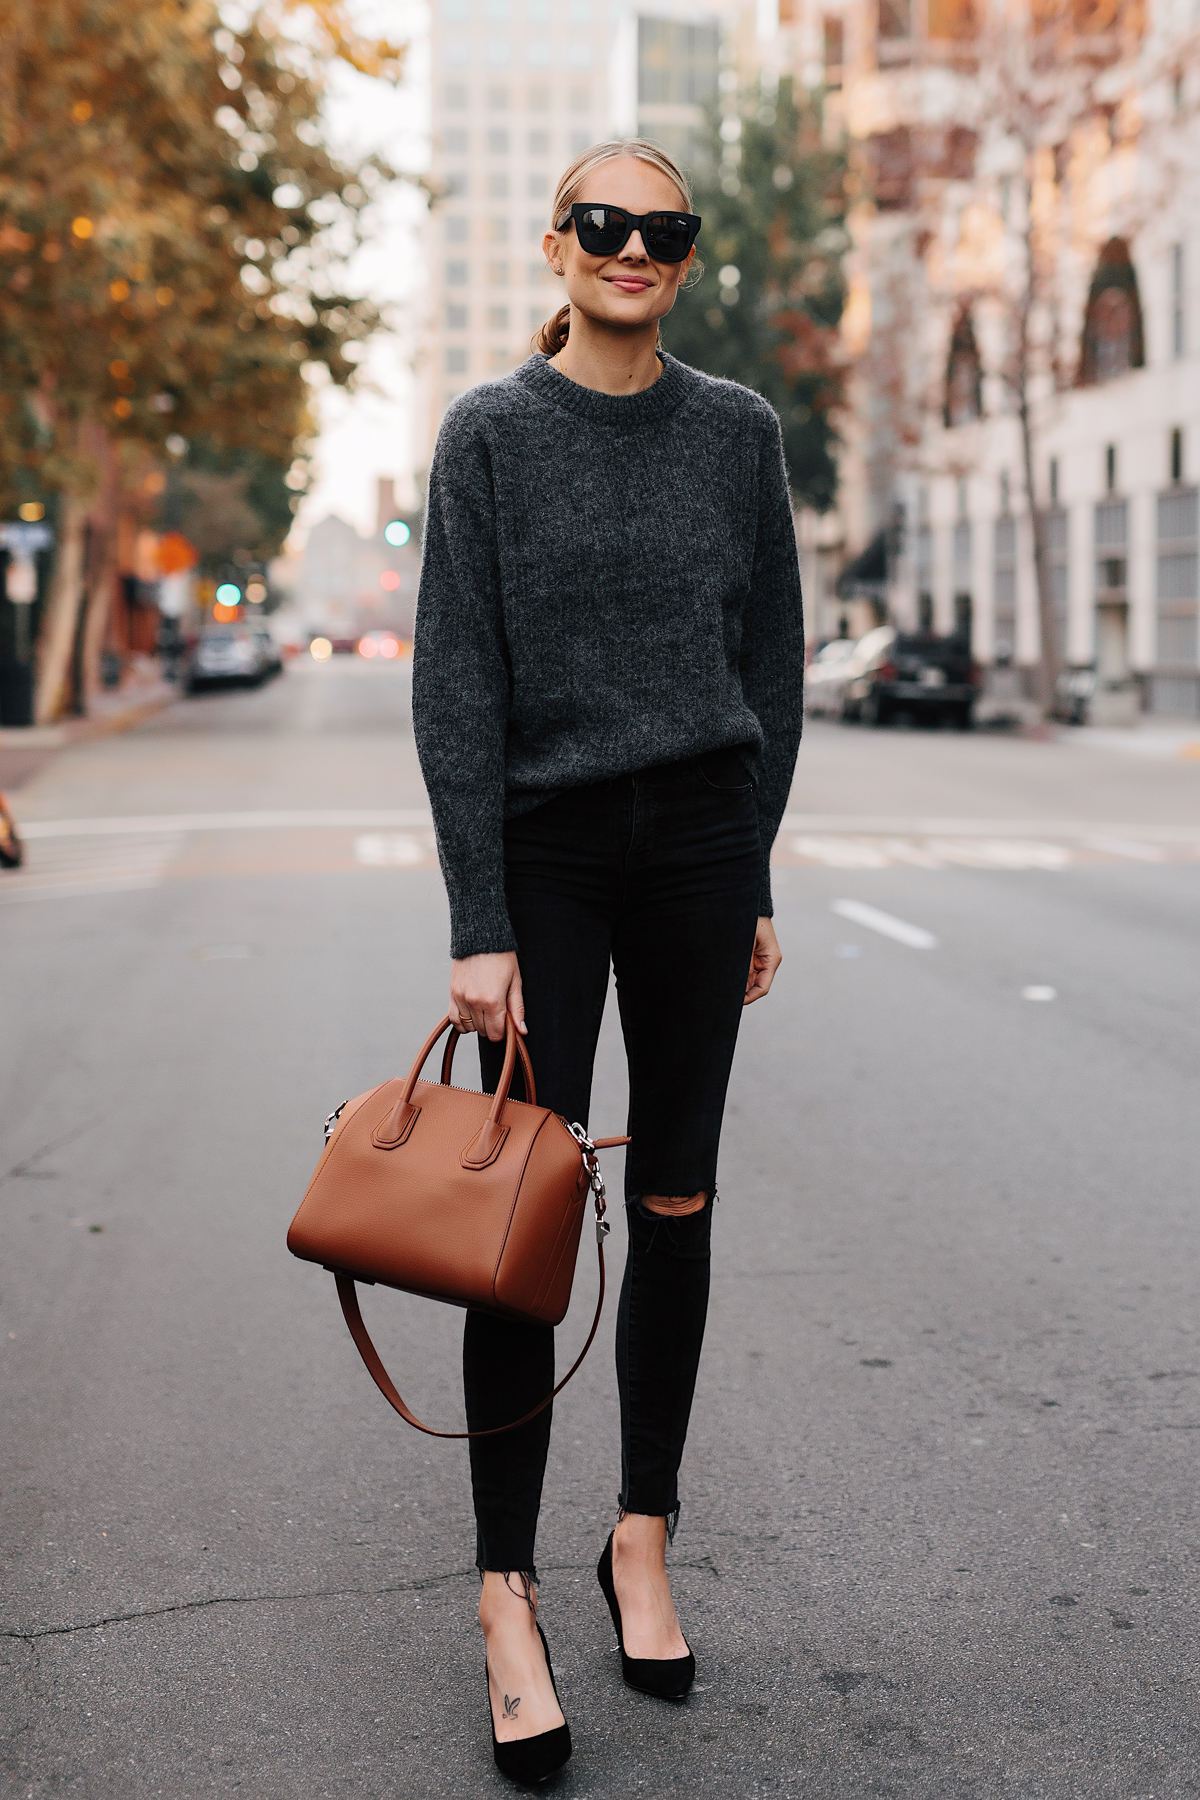 Blonde Woman Wearing Everlane Alpaca Dark Grey Sweater Black Ripped Skinny Jeans Black Heels Tan Satchel Handbag Fashion Jackson San Diego Fashion Blogger Street Style